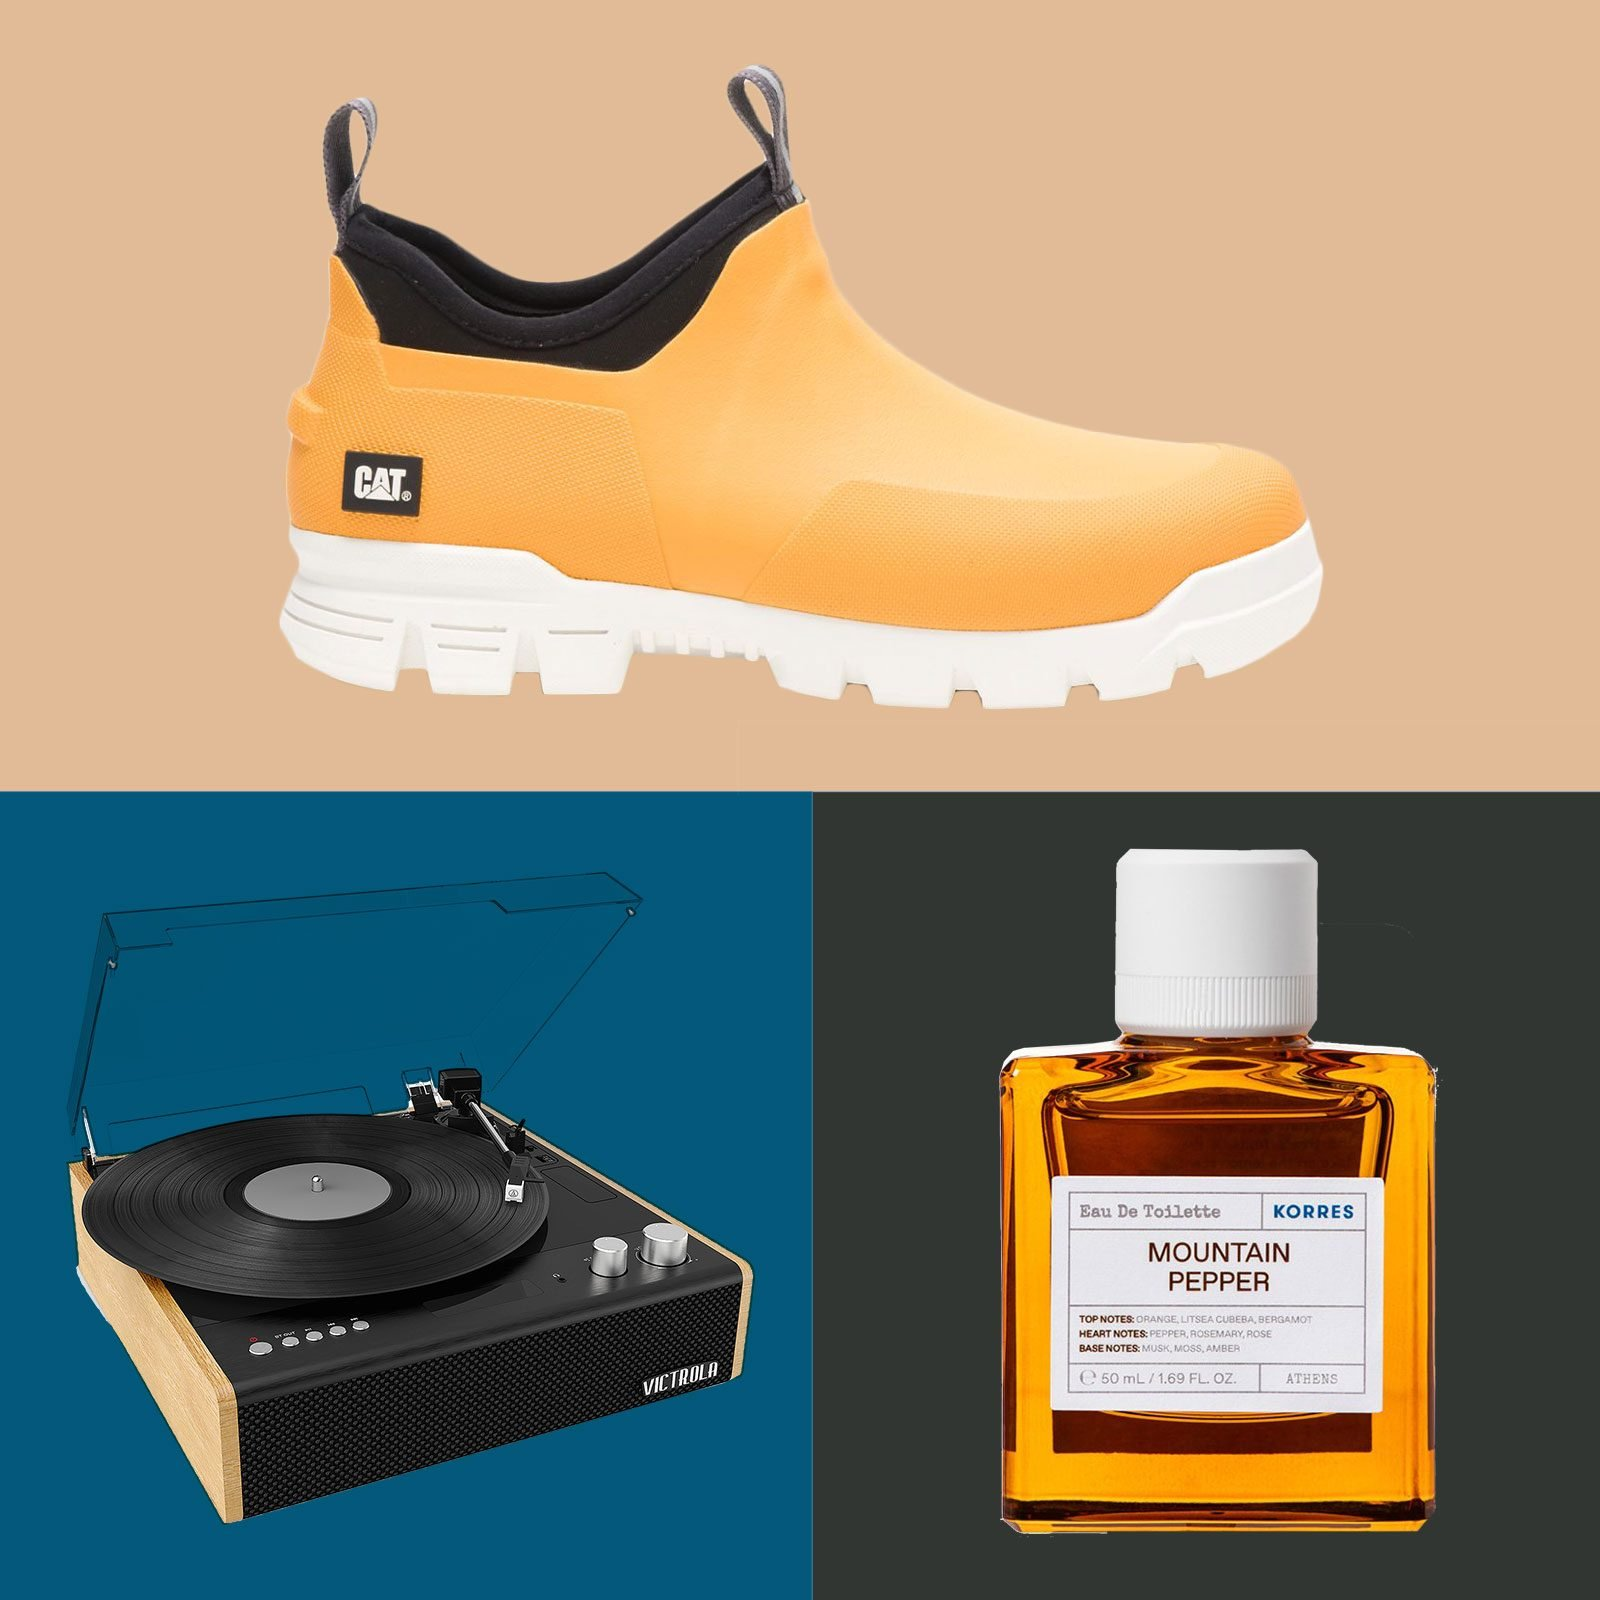 An orange shoe, vinyl record player, and cologne bottle